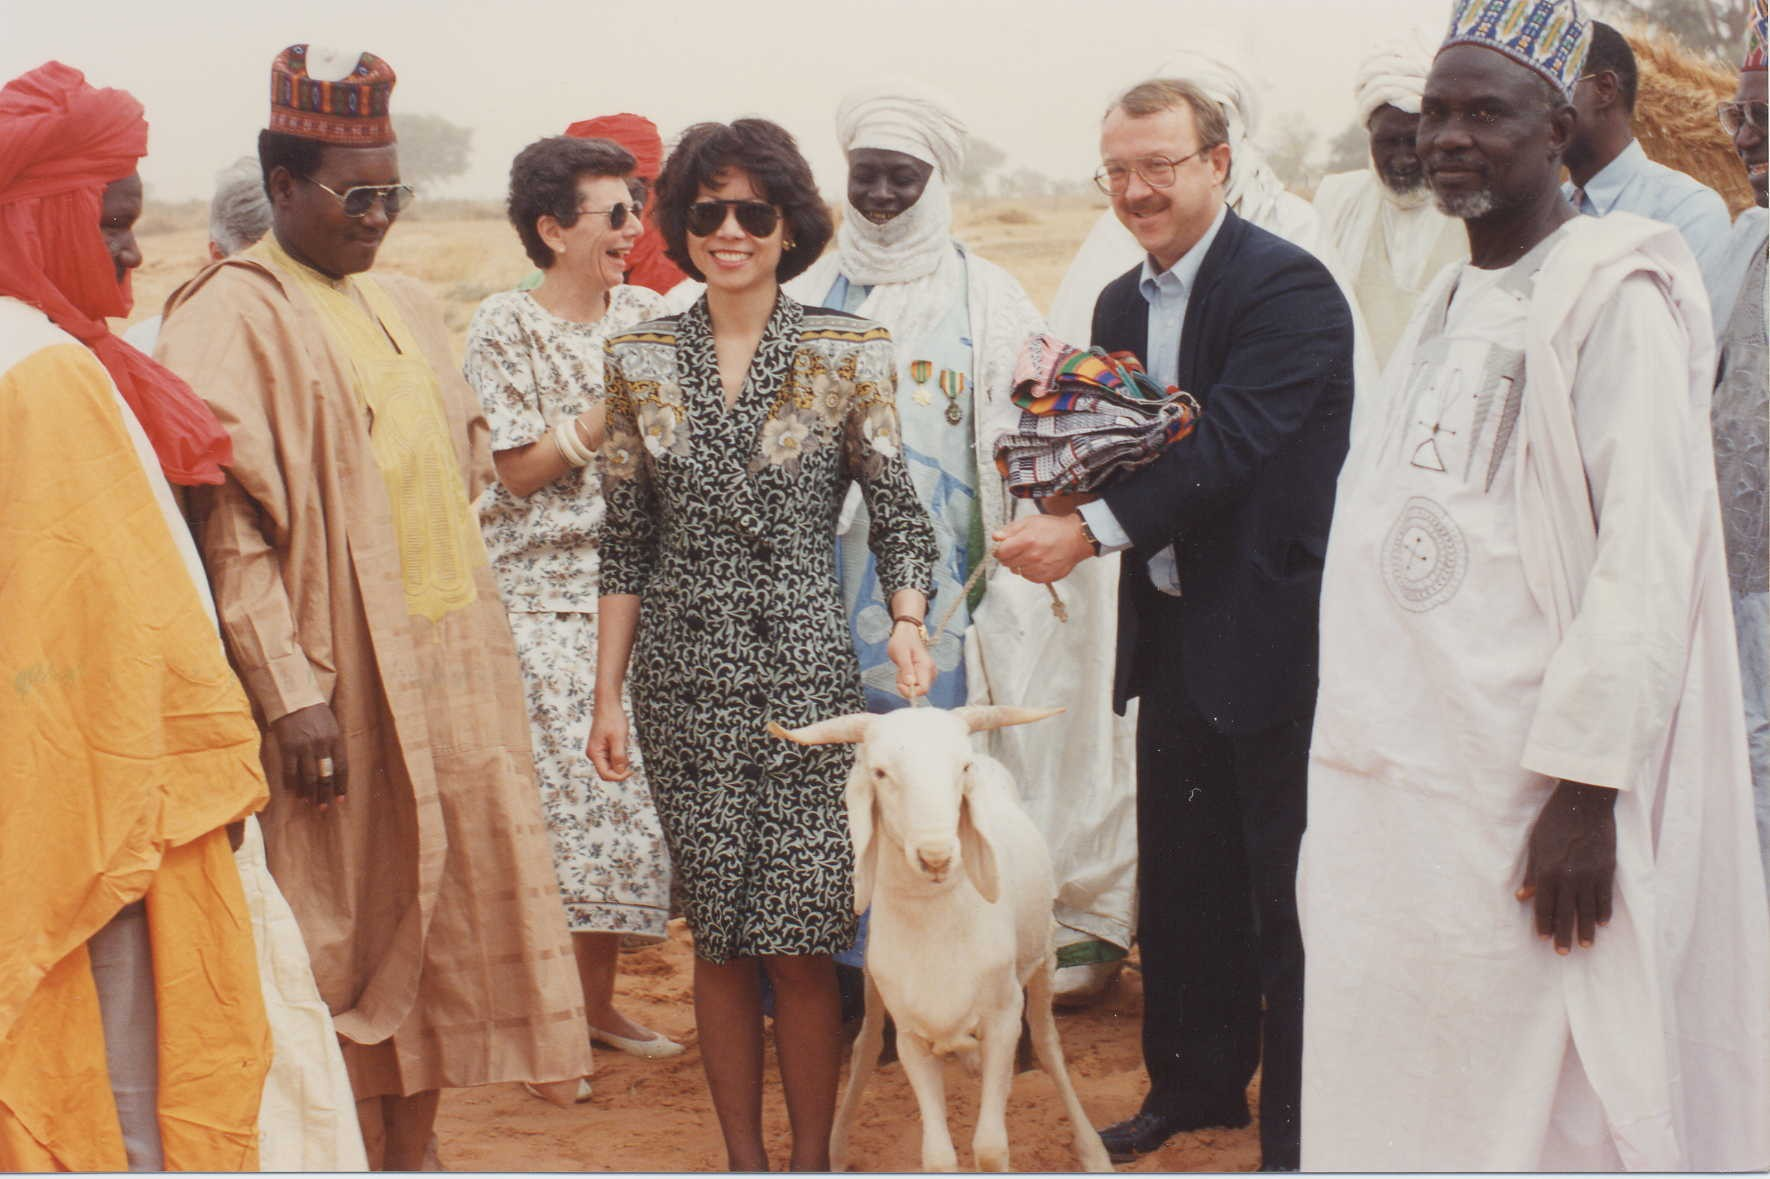 Peace Corps Director Elaine Chao presented with a goat by village elders upon her arrival in Niger.